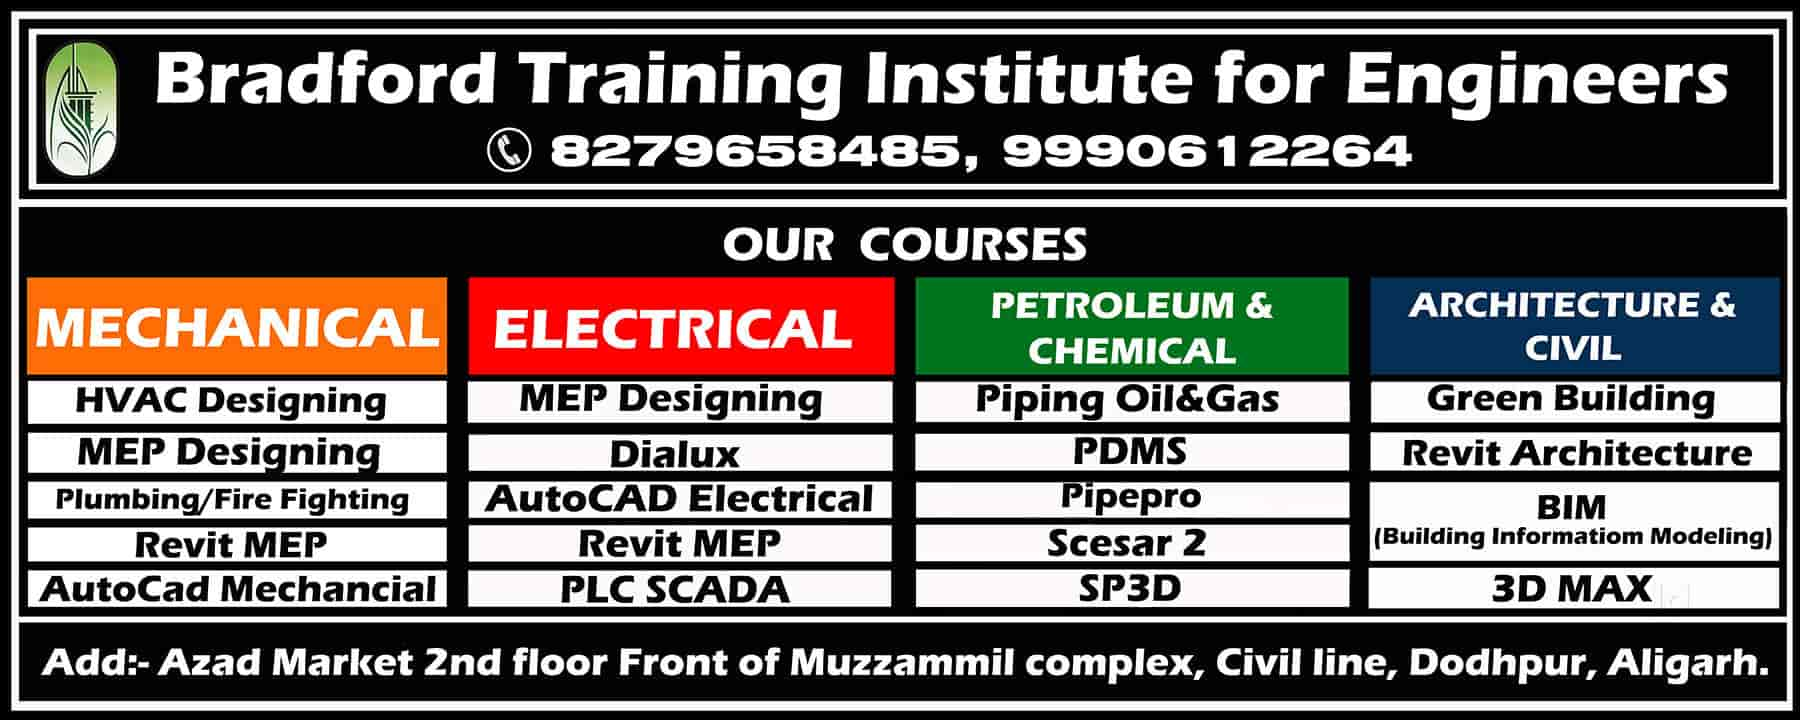 Bradford Training Institute For Engineers, Dodhpur